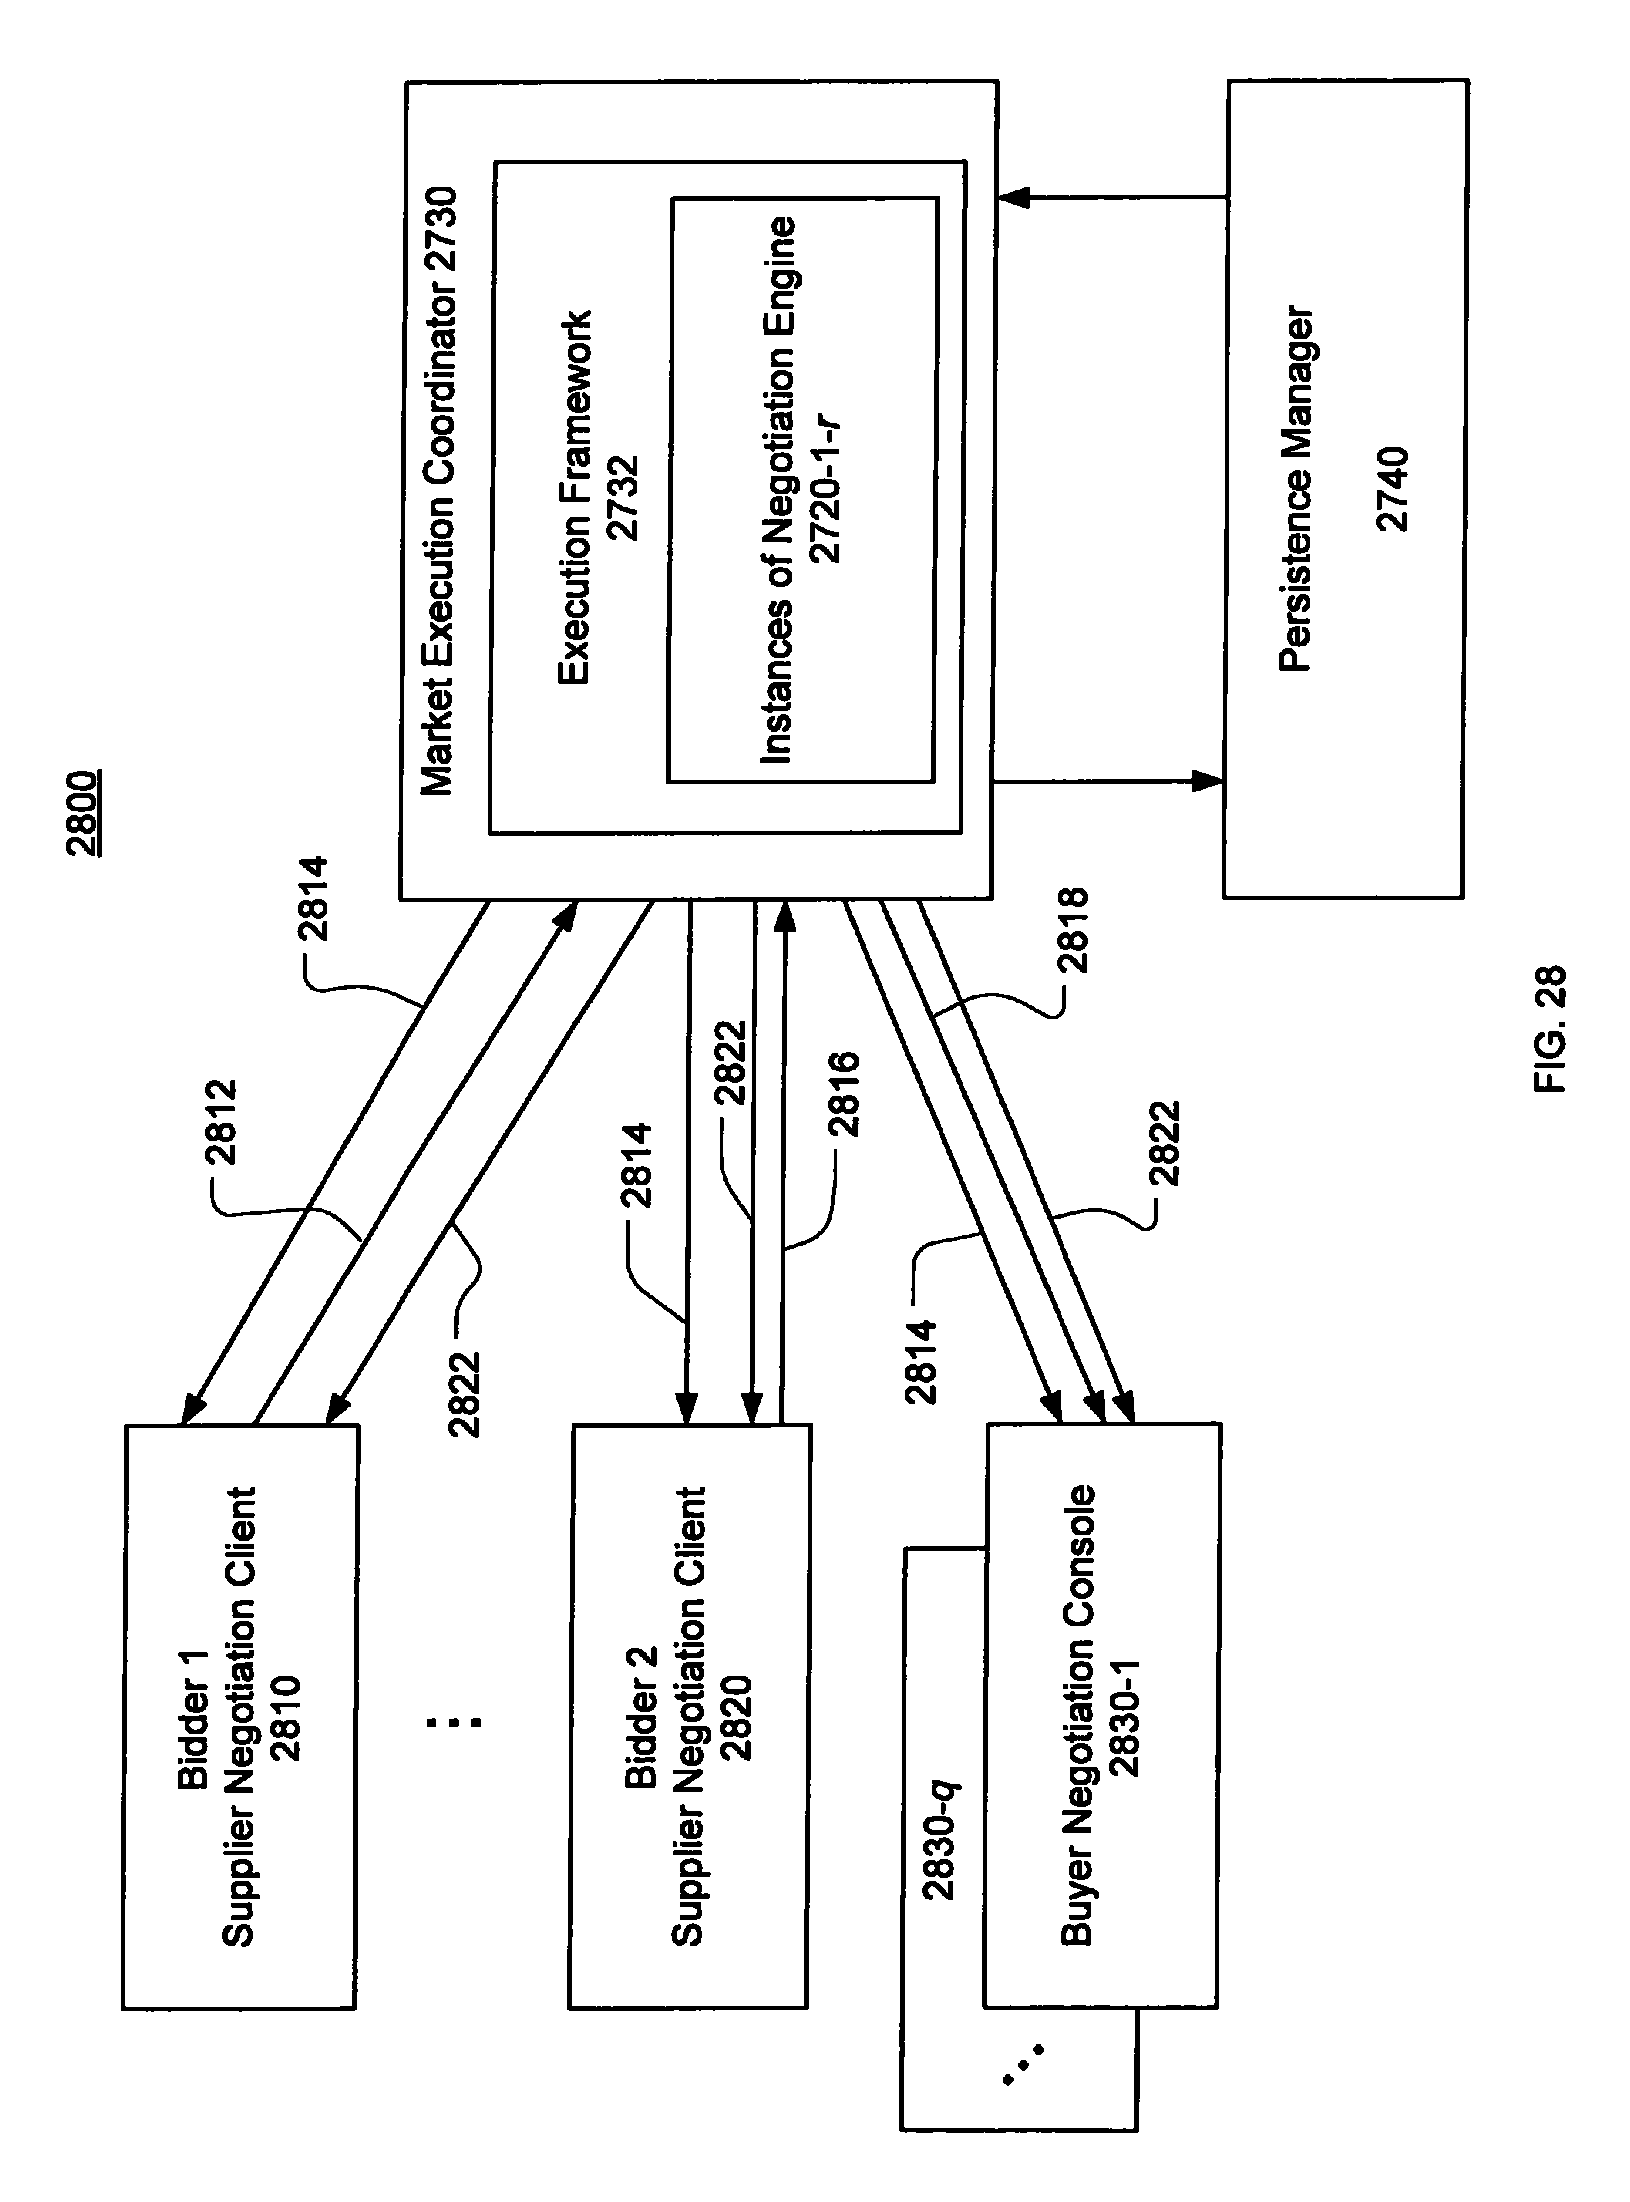 Patent Us 8712858 B2 Auto Wiring Diagram Symbols Furthermore Excel Worksheet Java 0 Petitions